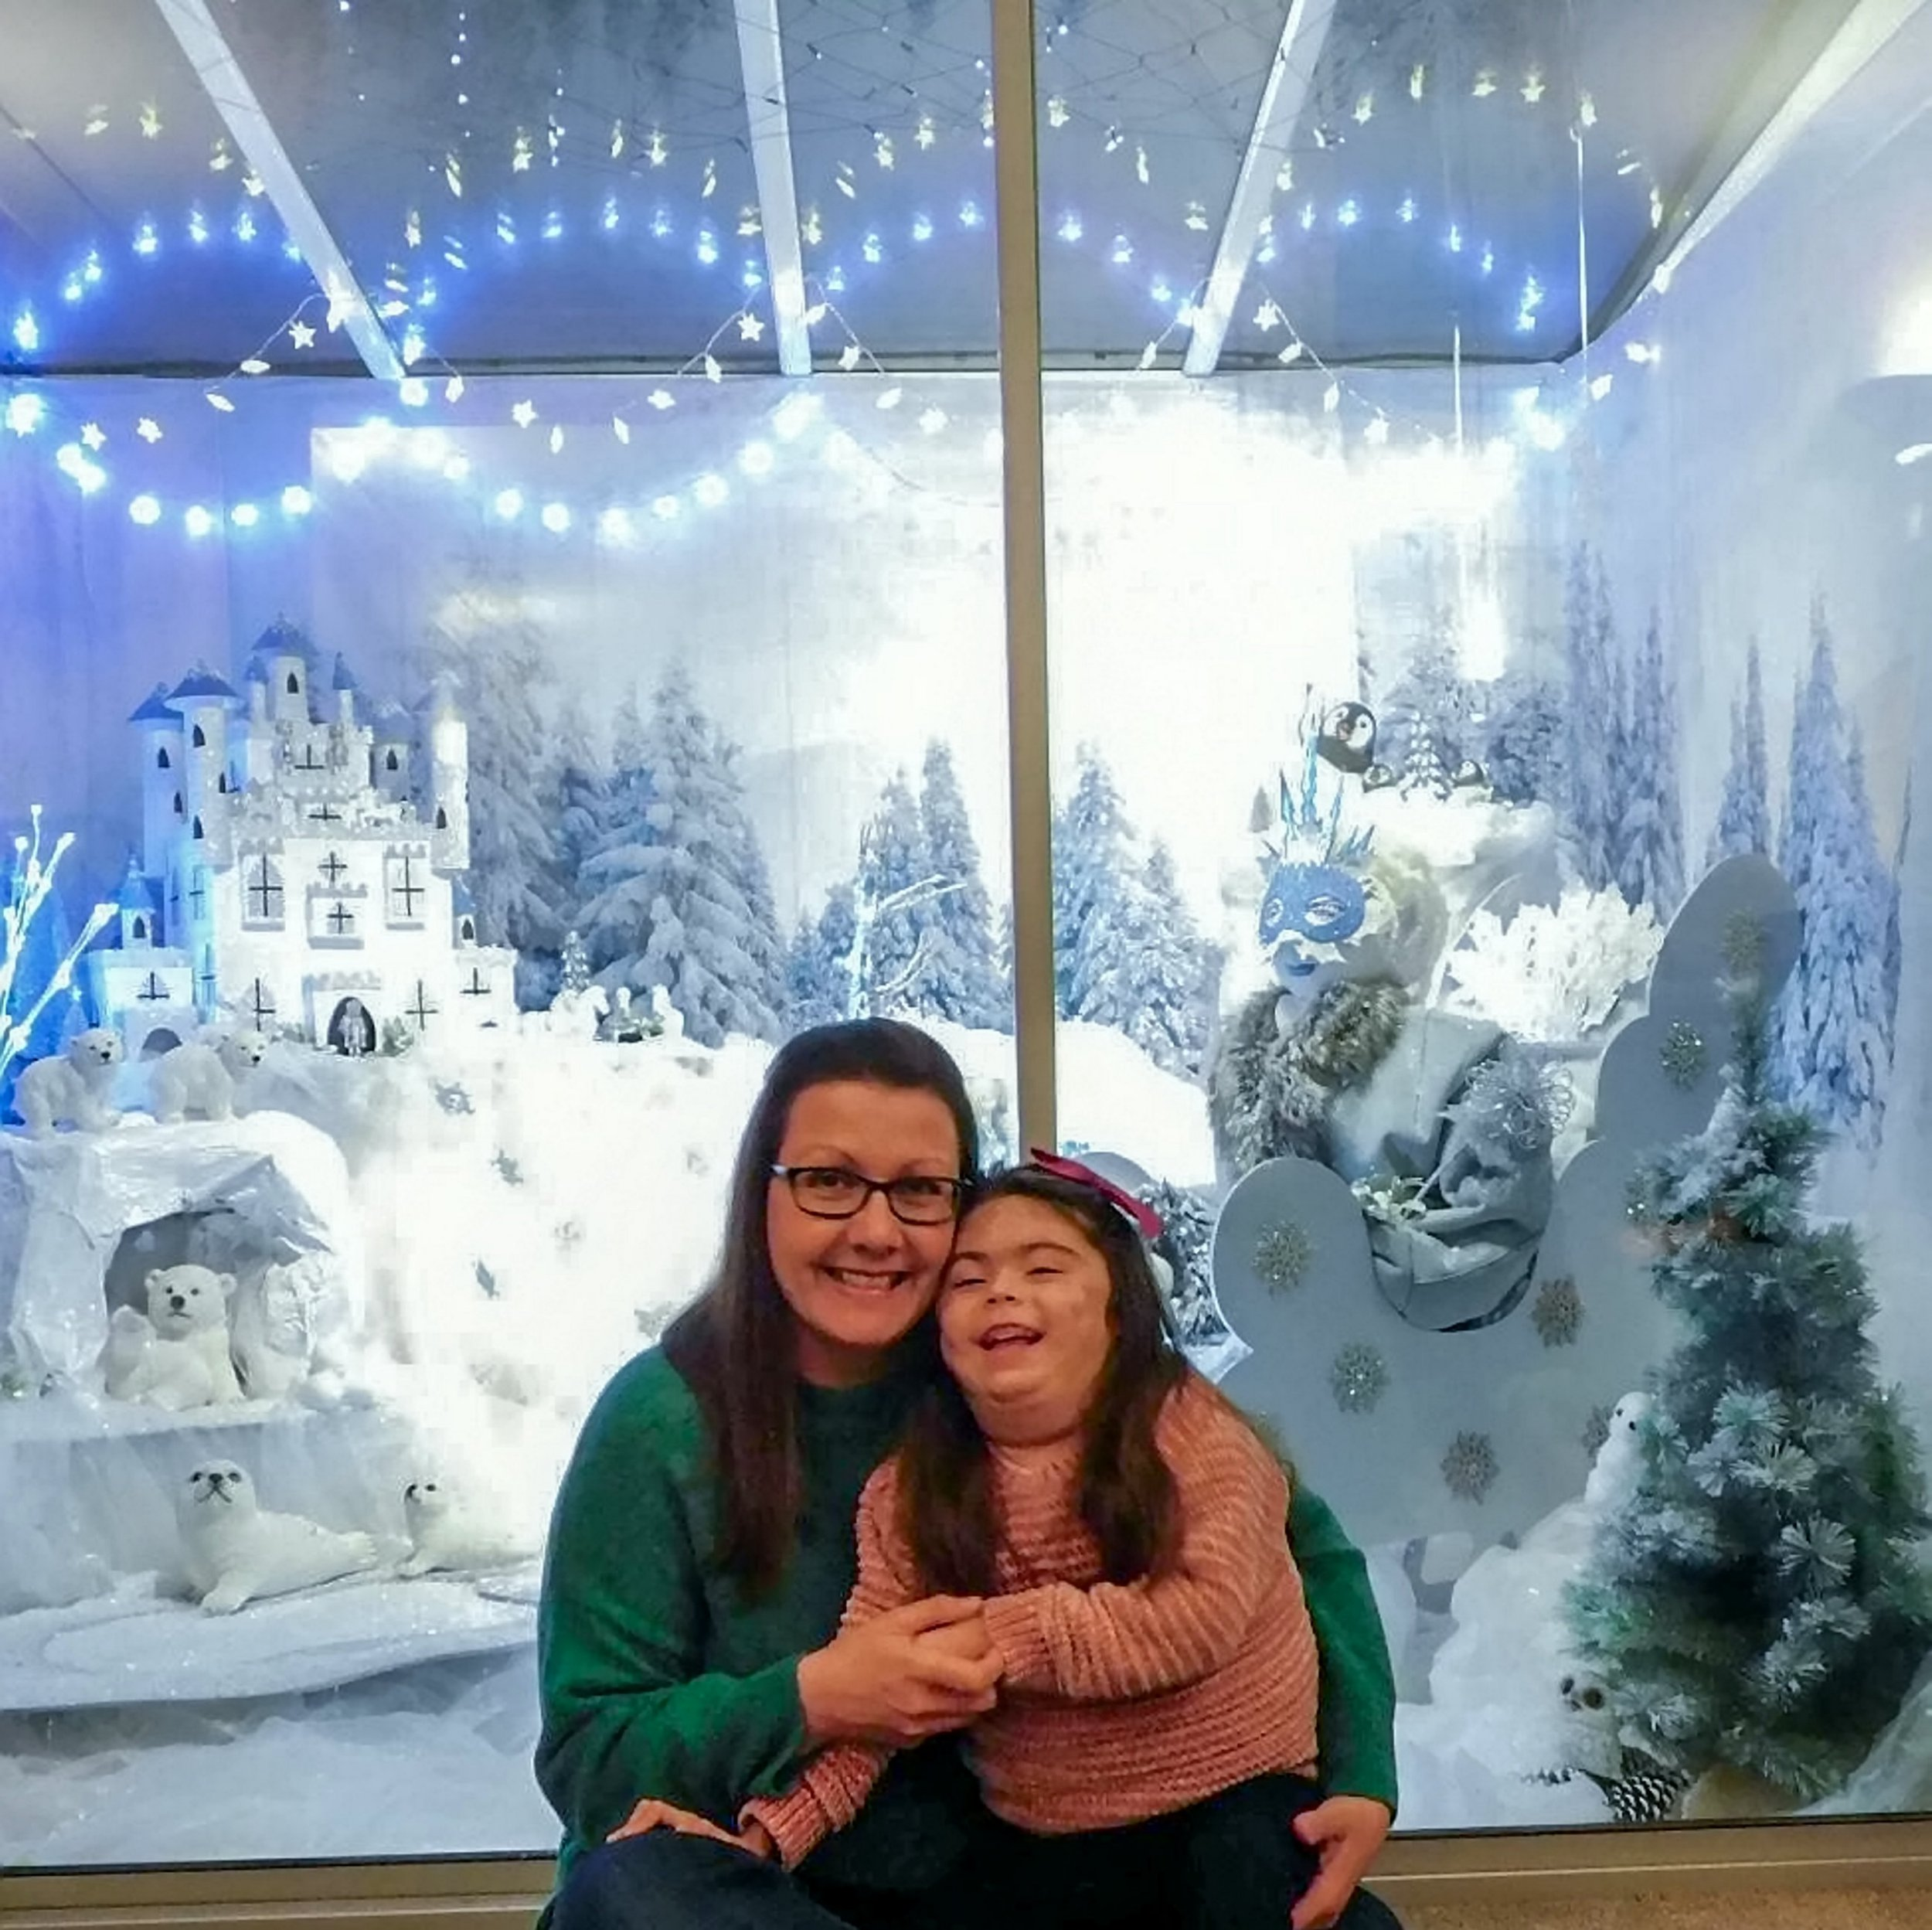 Helen Sadler with her terminally ill daughter Erin and the 'Lapland' she created for her child to enjoy. See SWNS story SWCAlapland; The mum of a girl with a life-threatening condition has gone DIY to create an incredible 'Lapland' in their conservatory - after her daughter was too ill to see the real thing. Helen Sadler, 40, transformed her the room in her home into a winter wonderland after five-year-old Erin was too sick to travel to Finland to see it in real life. The mother-of-one used little Erin's old medicine packets and syringe boxes to make an impressive fairy castle.